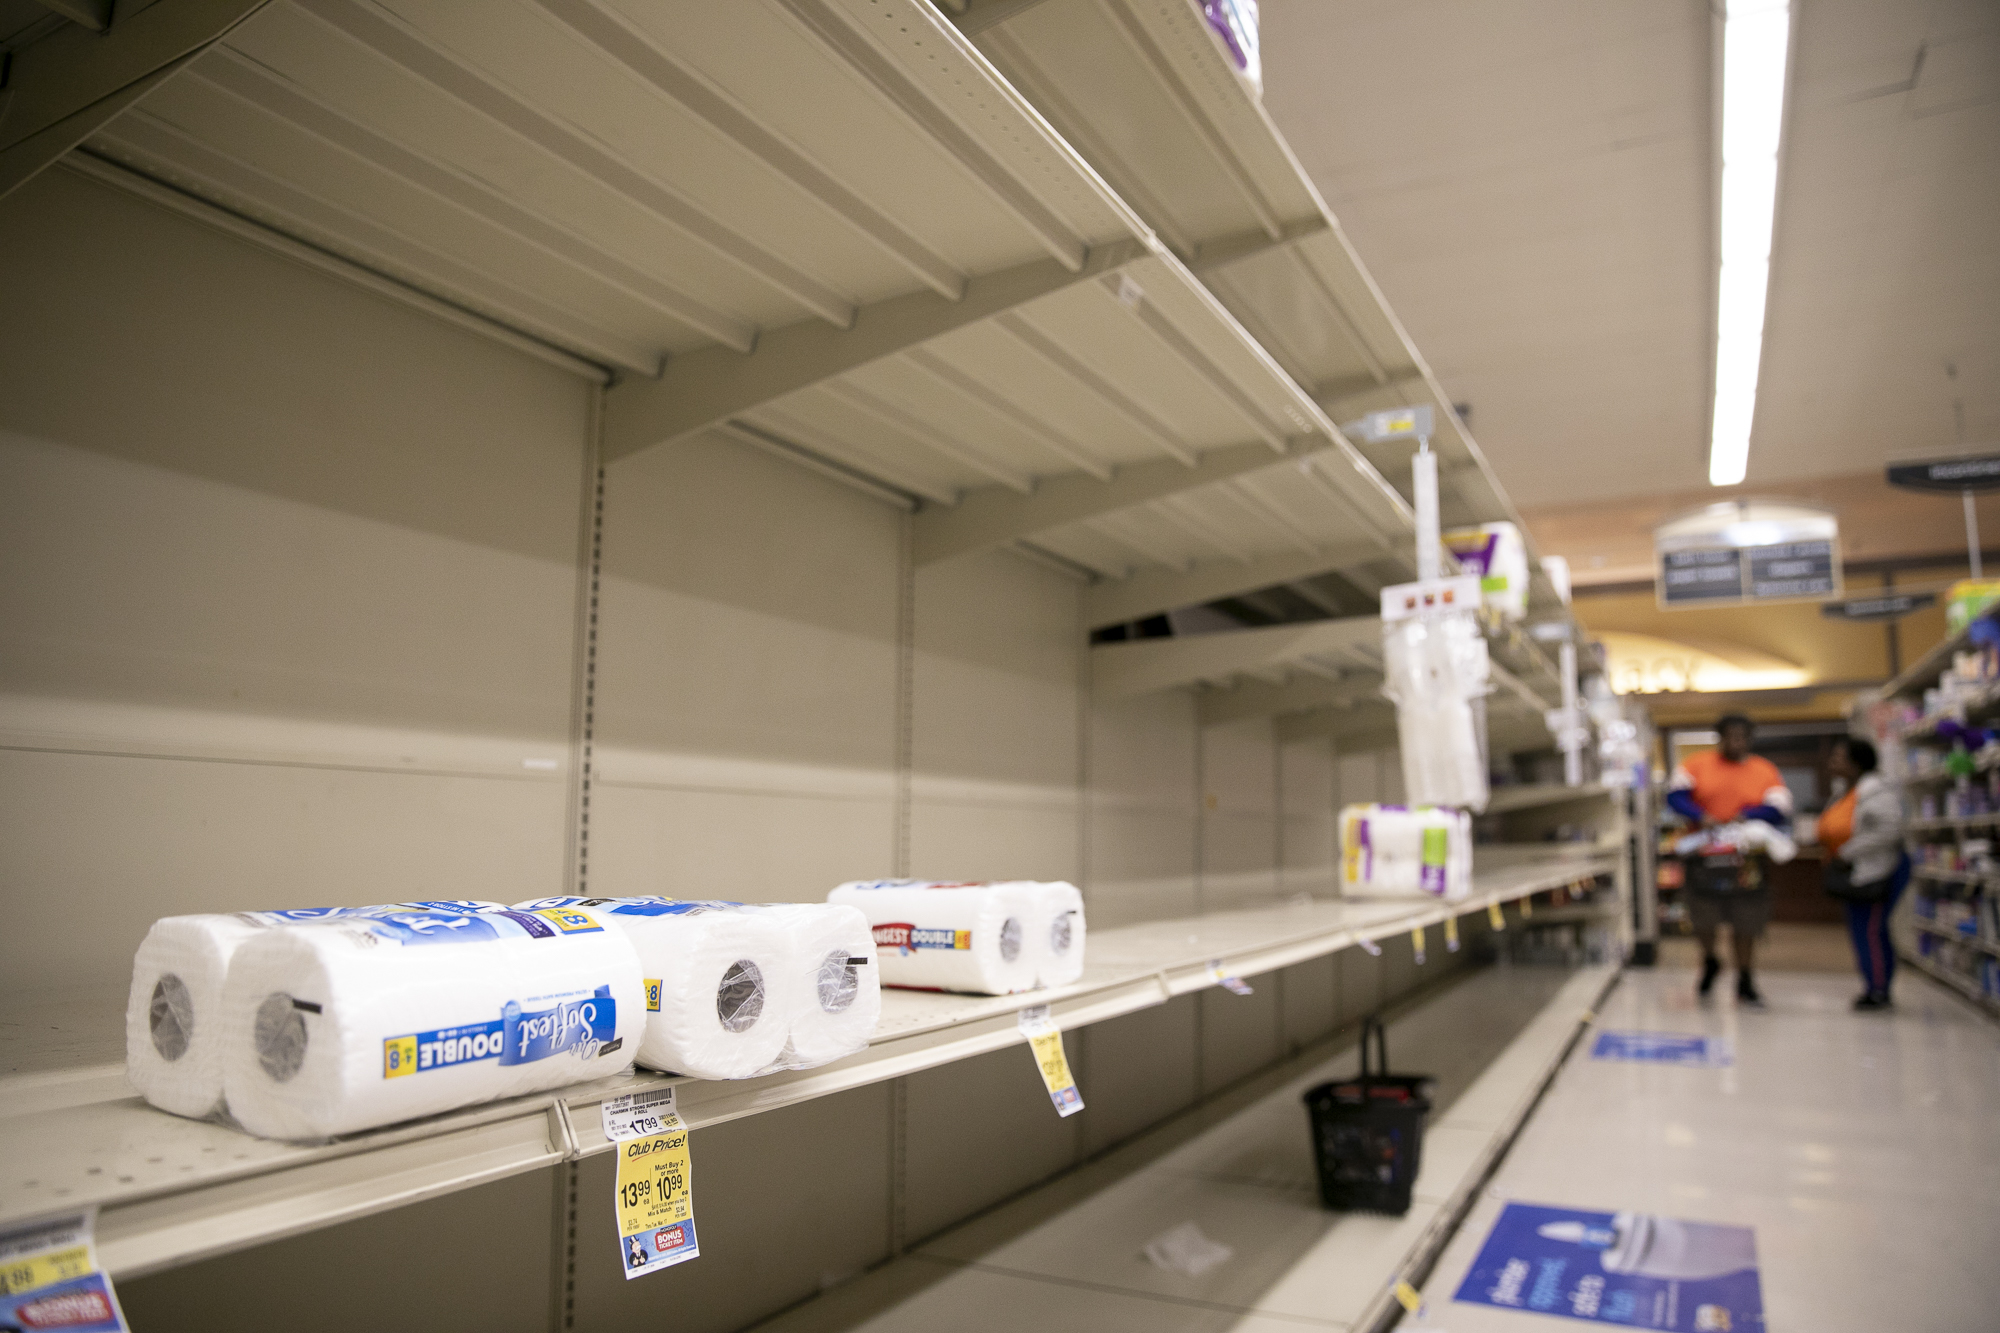 Empty shelves of toilet paper and paper towels at Safeway in the Fillmore neighborhood of San Francisco on March 13, 2020. On Thursday Gov. Gavin Newsom issued an executive order banning events of more than 250 people amid coronavirus concerns. Photo by Anne Wernikoff for CalMatters